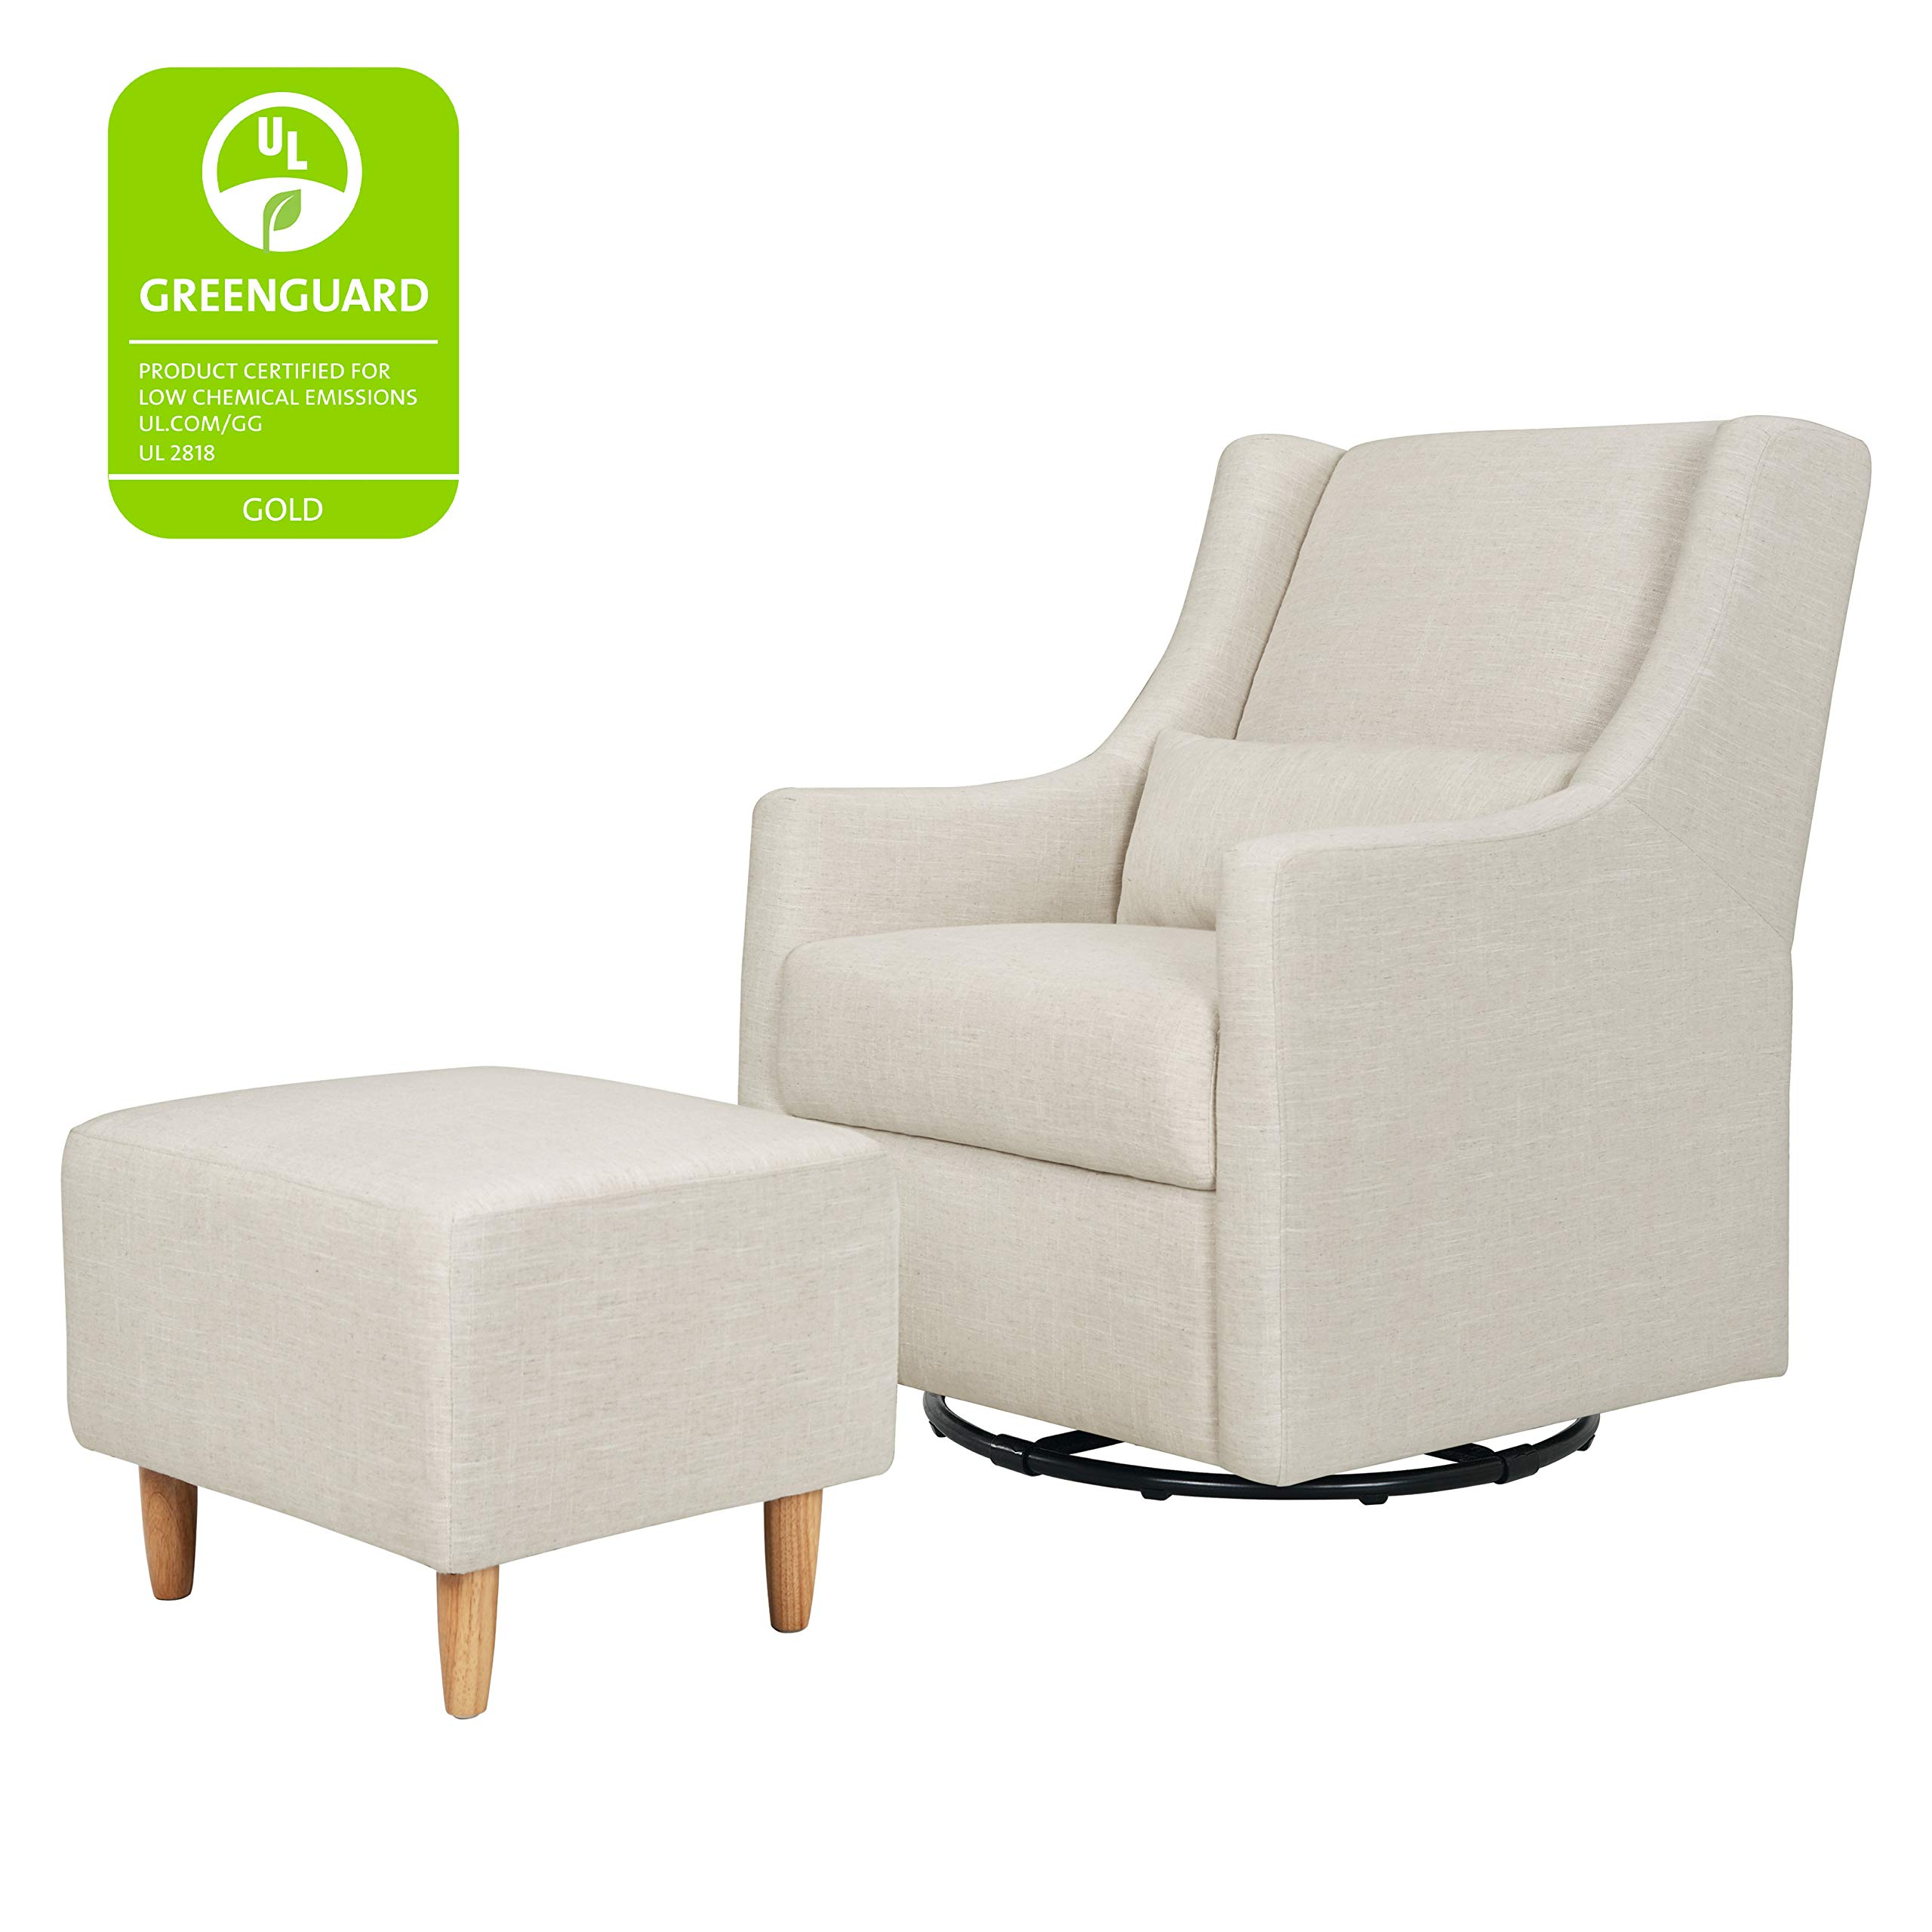 Babyletto Toco Upholstered Swivel Glider and Stationary Ottoman, White Linen by Babyletto